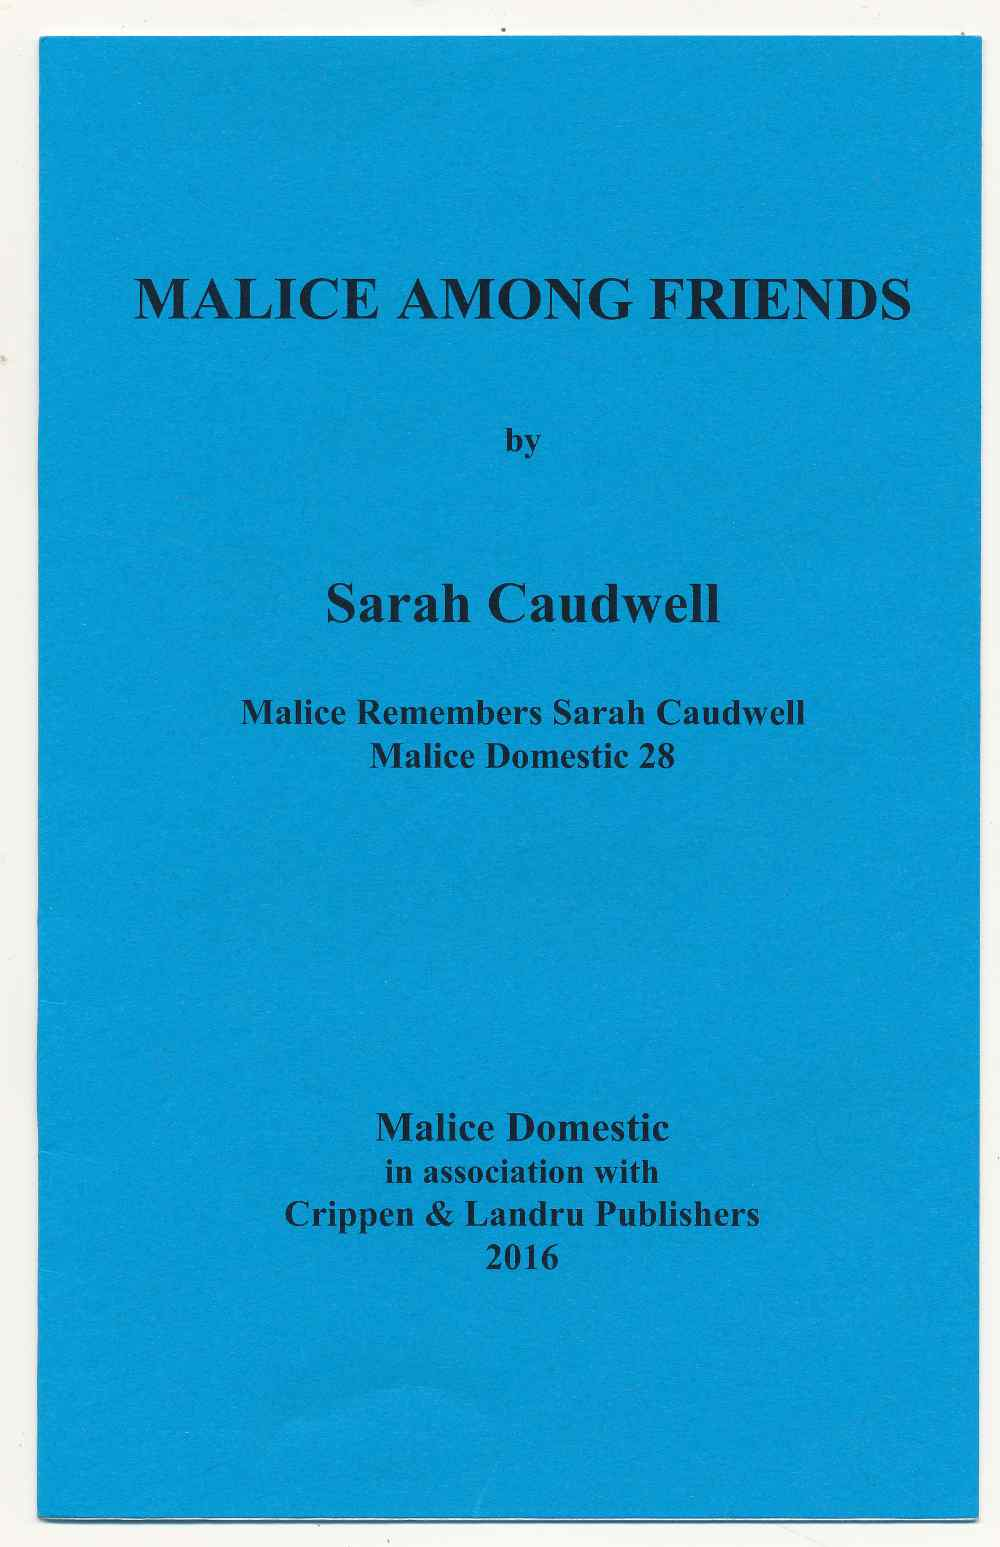 Malice among friends